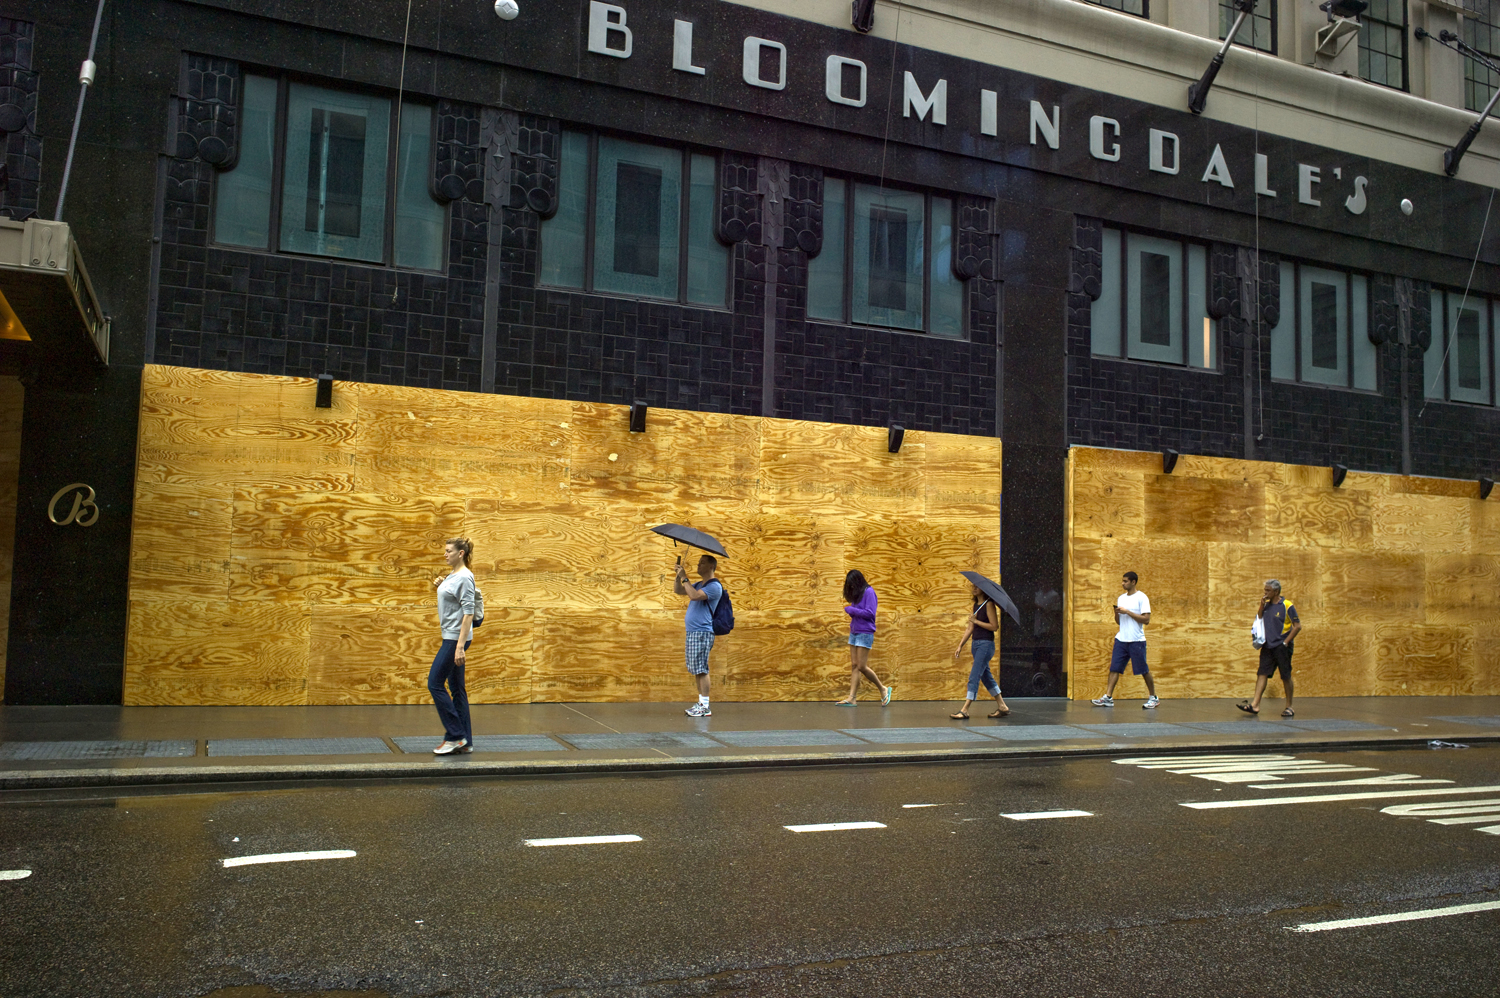 August 28, 2011, New York, NY. Pedestrians stroll past a boarded up Bloomingdales on Sunday morning after the worst of the storm had passed.